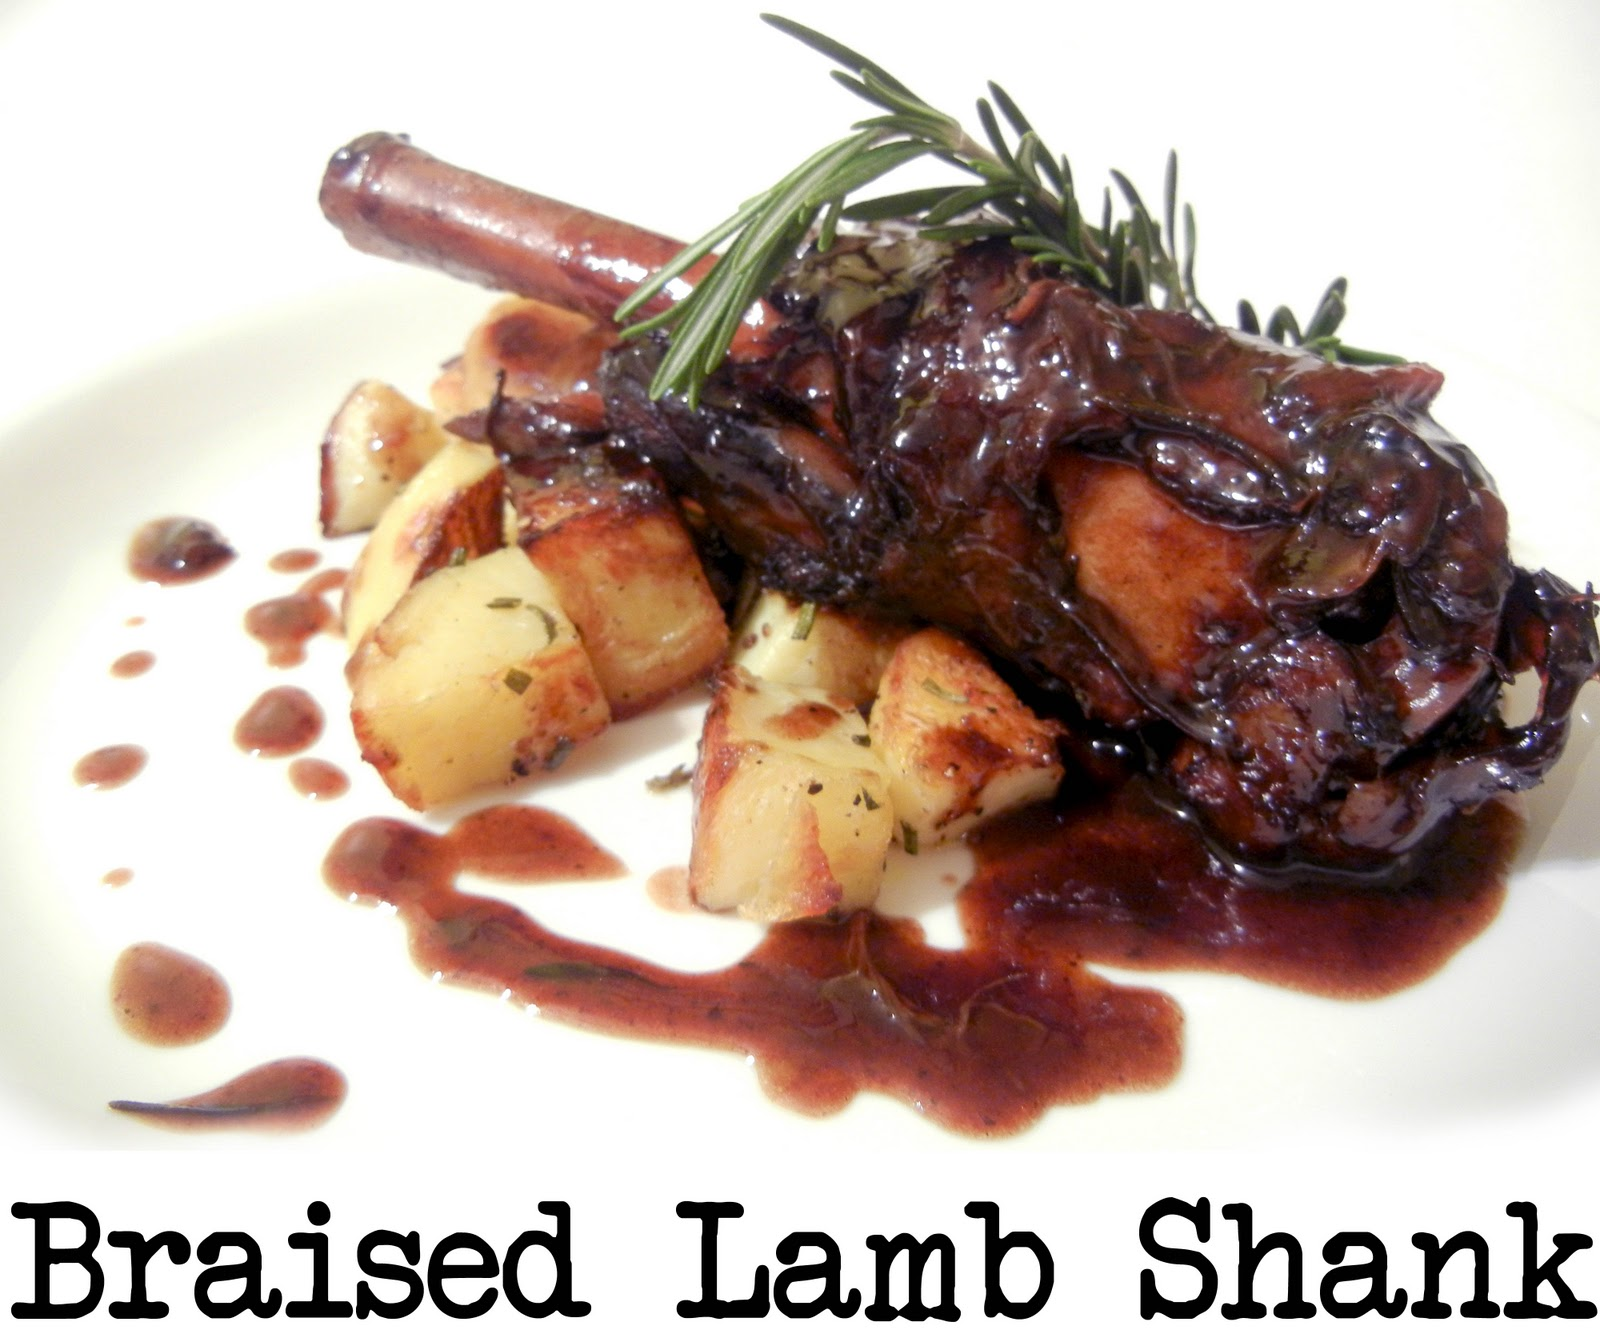 ... soy braised lamb shanks recipes dishmaps soy braised lamb shanks